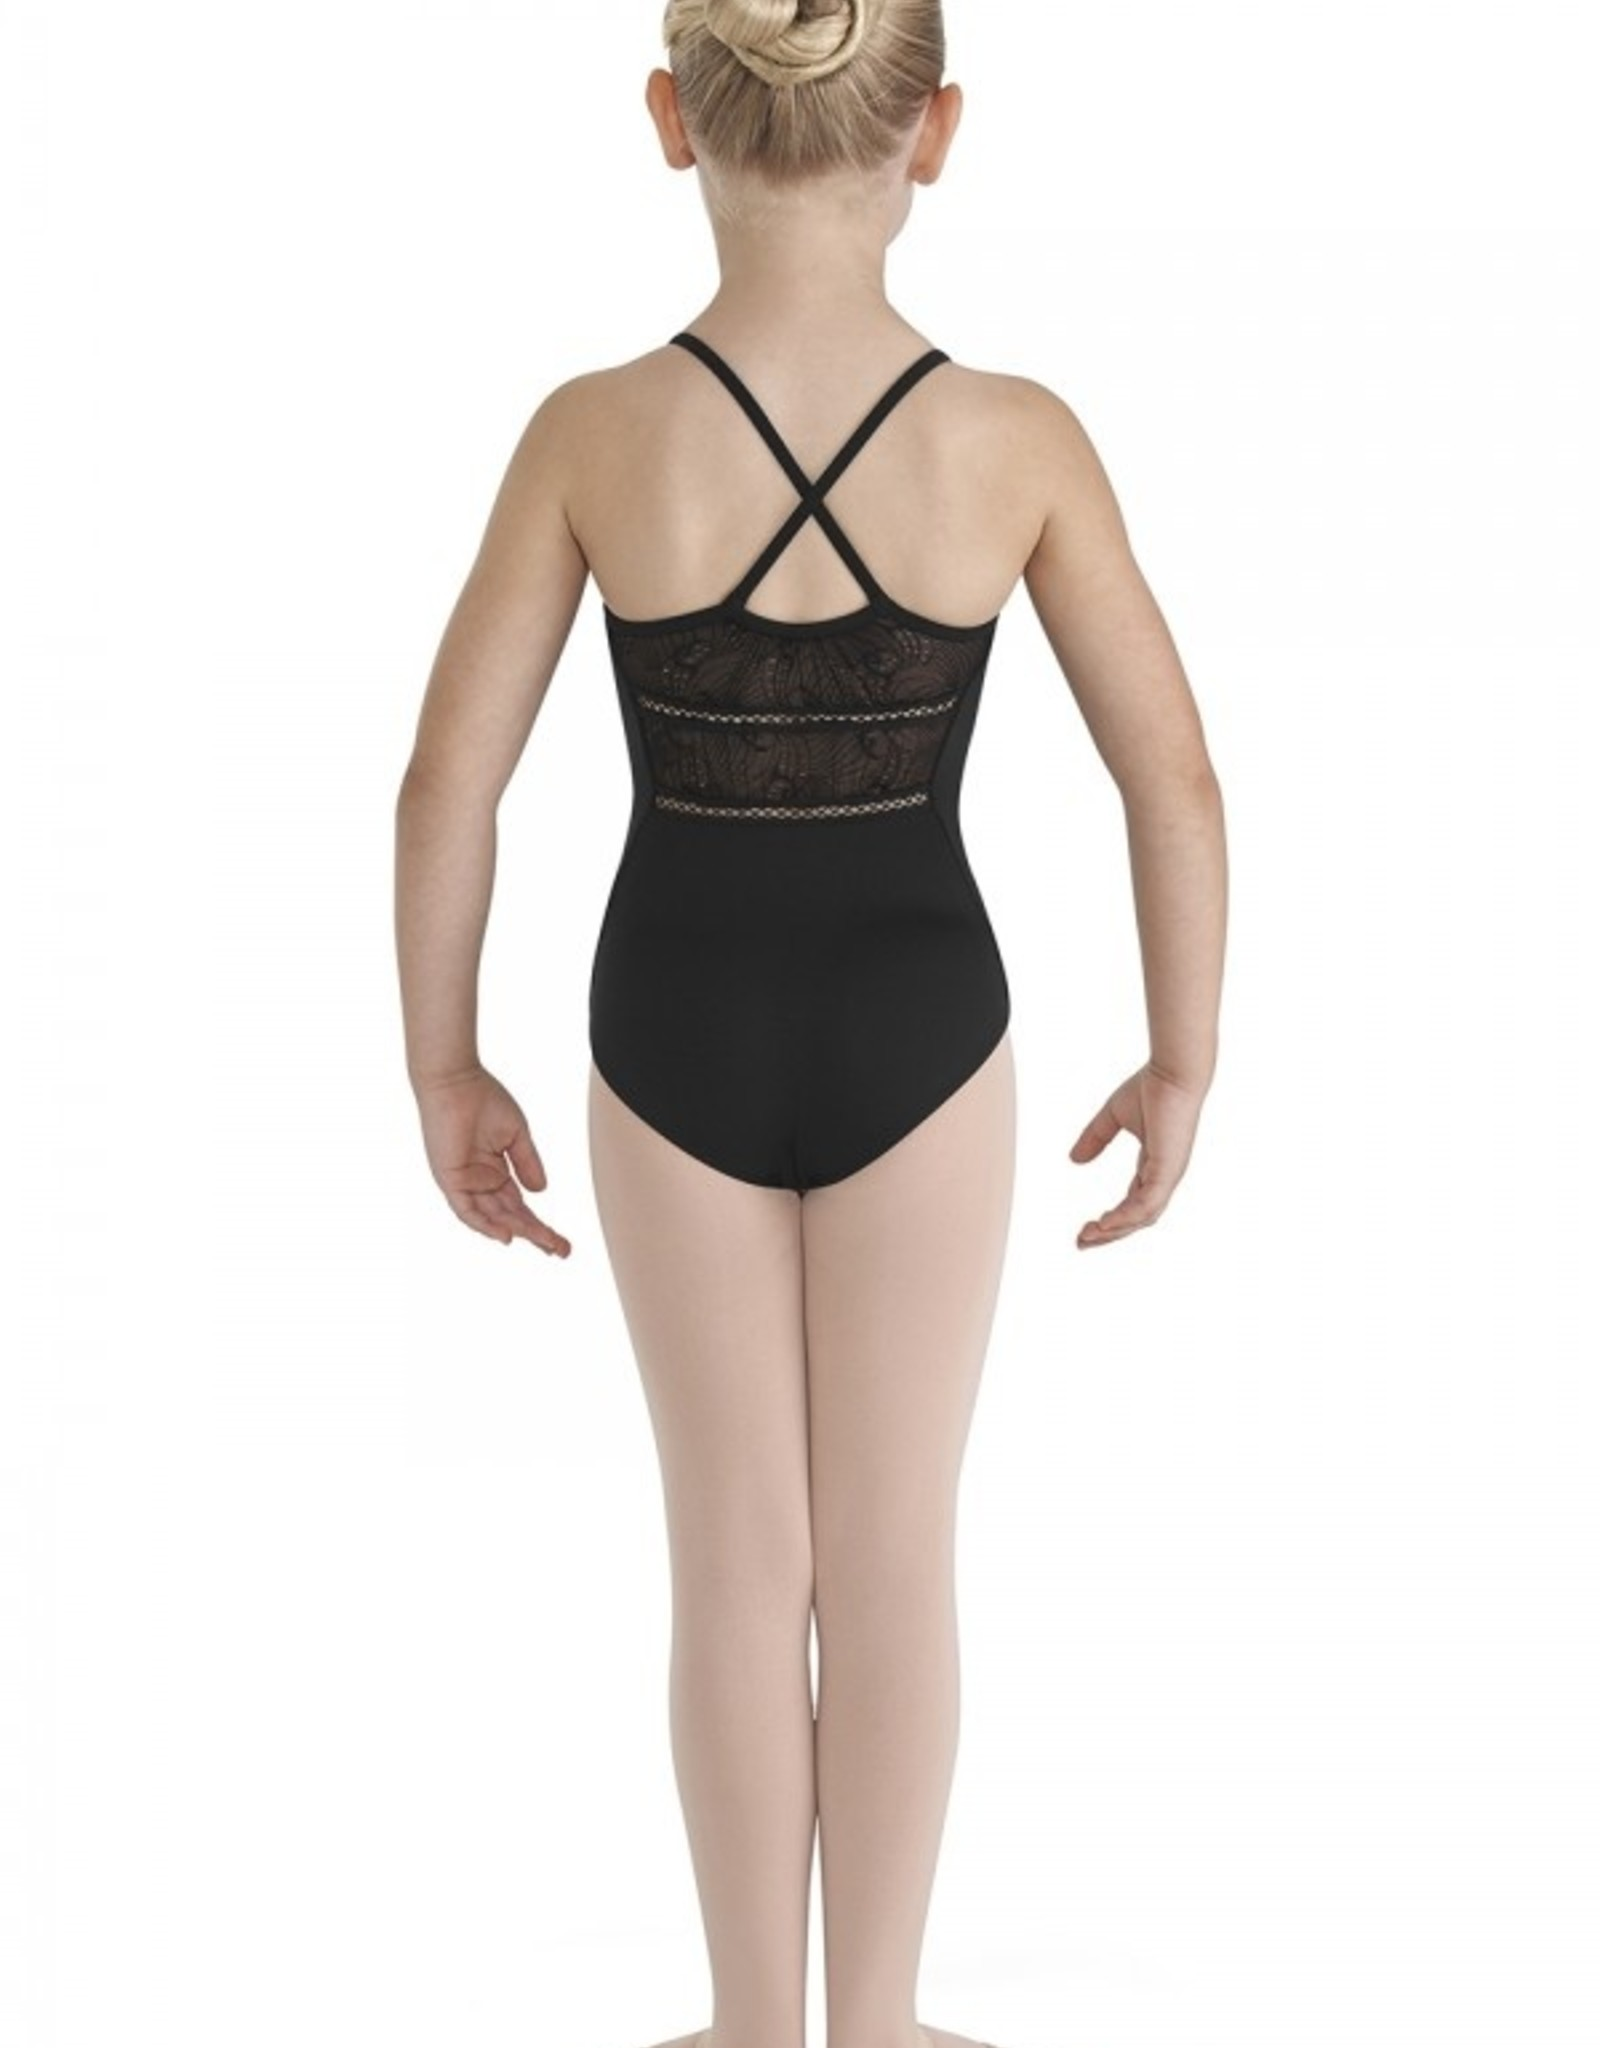 BLOCH VIPULA CAMISOLE STRAP CROSS LEOTARD (CL8690)